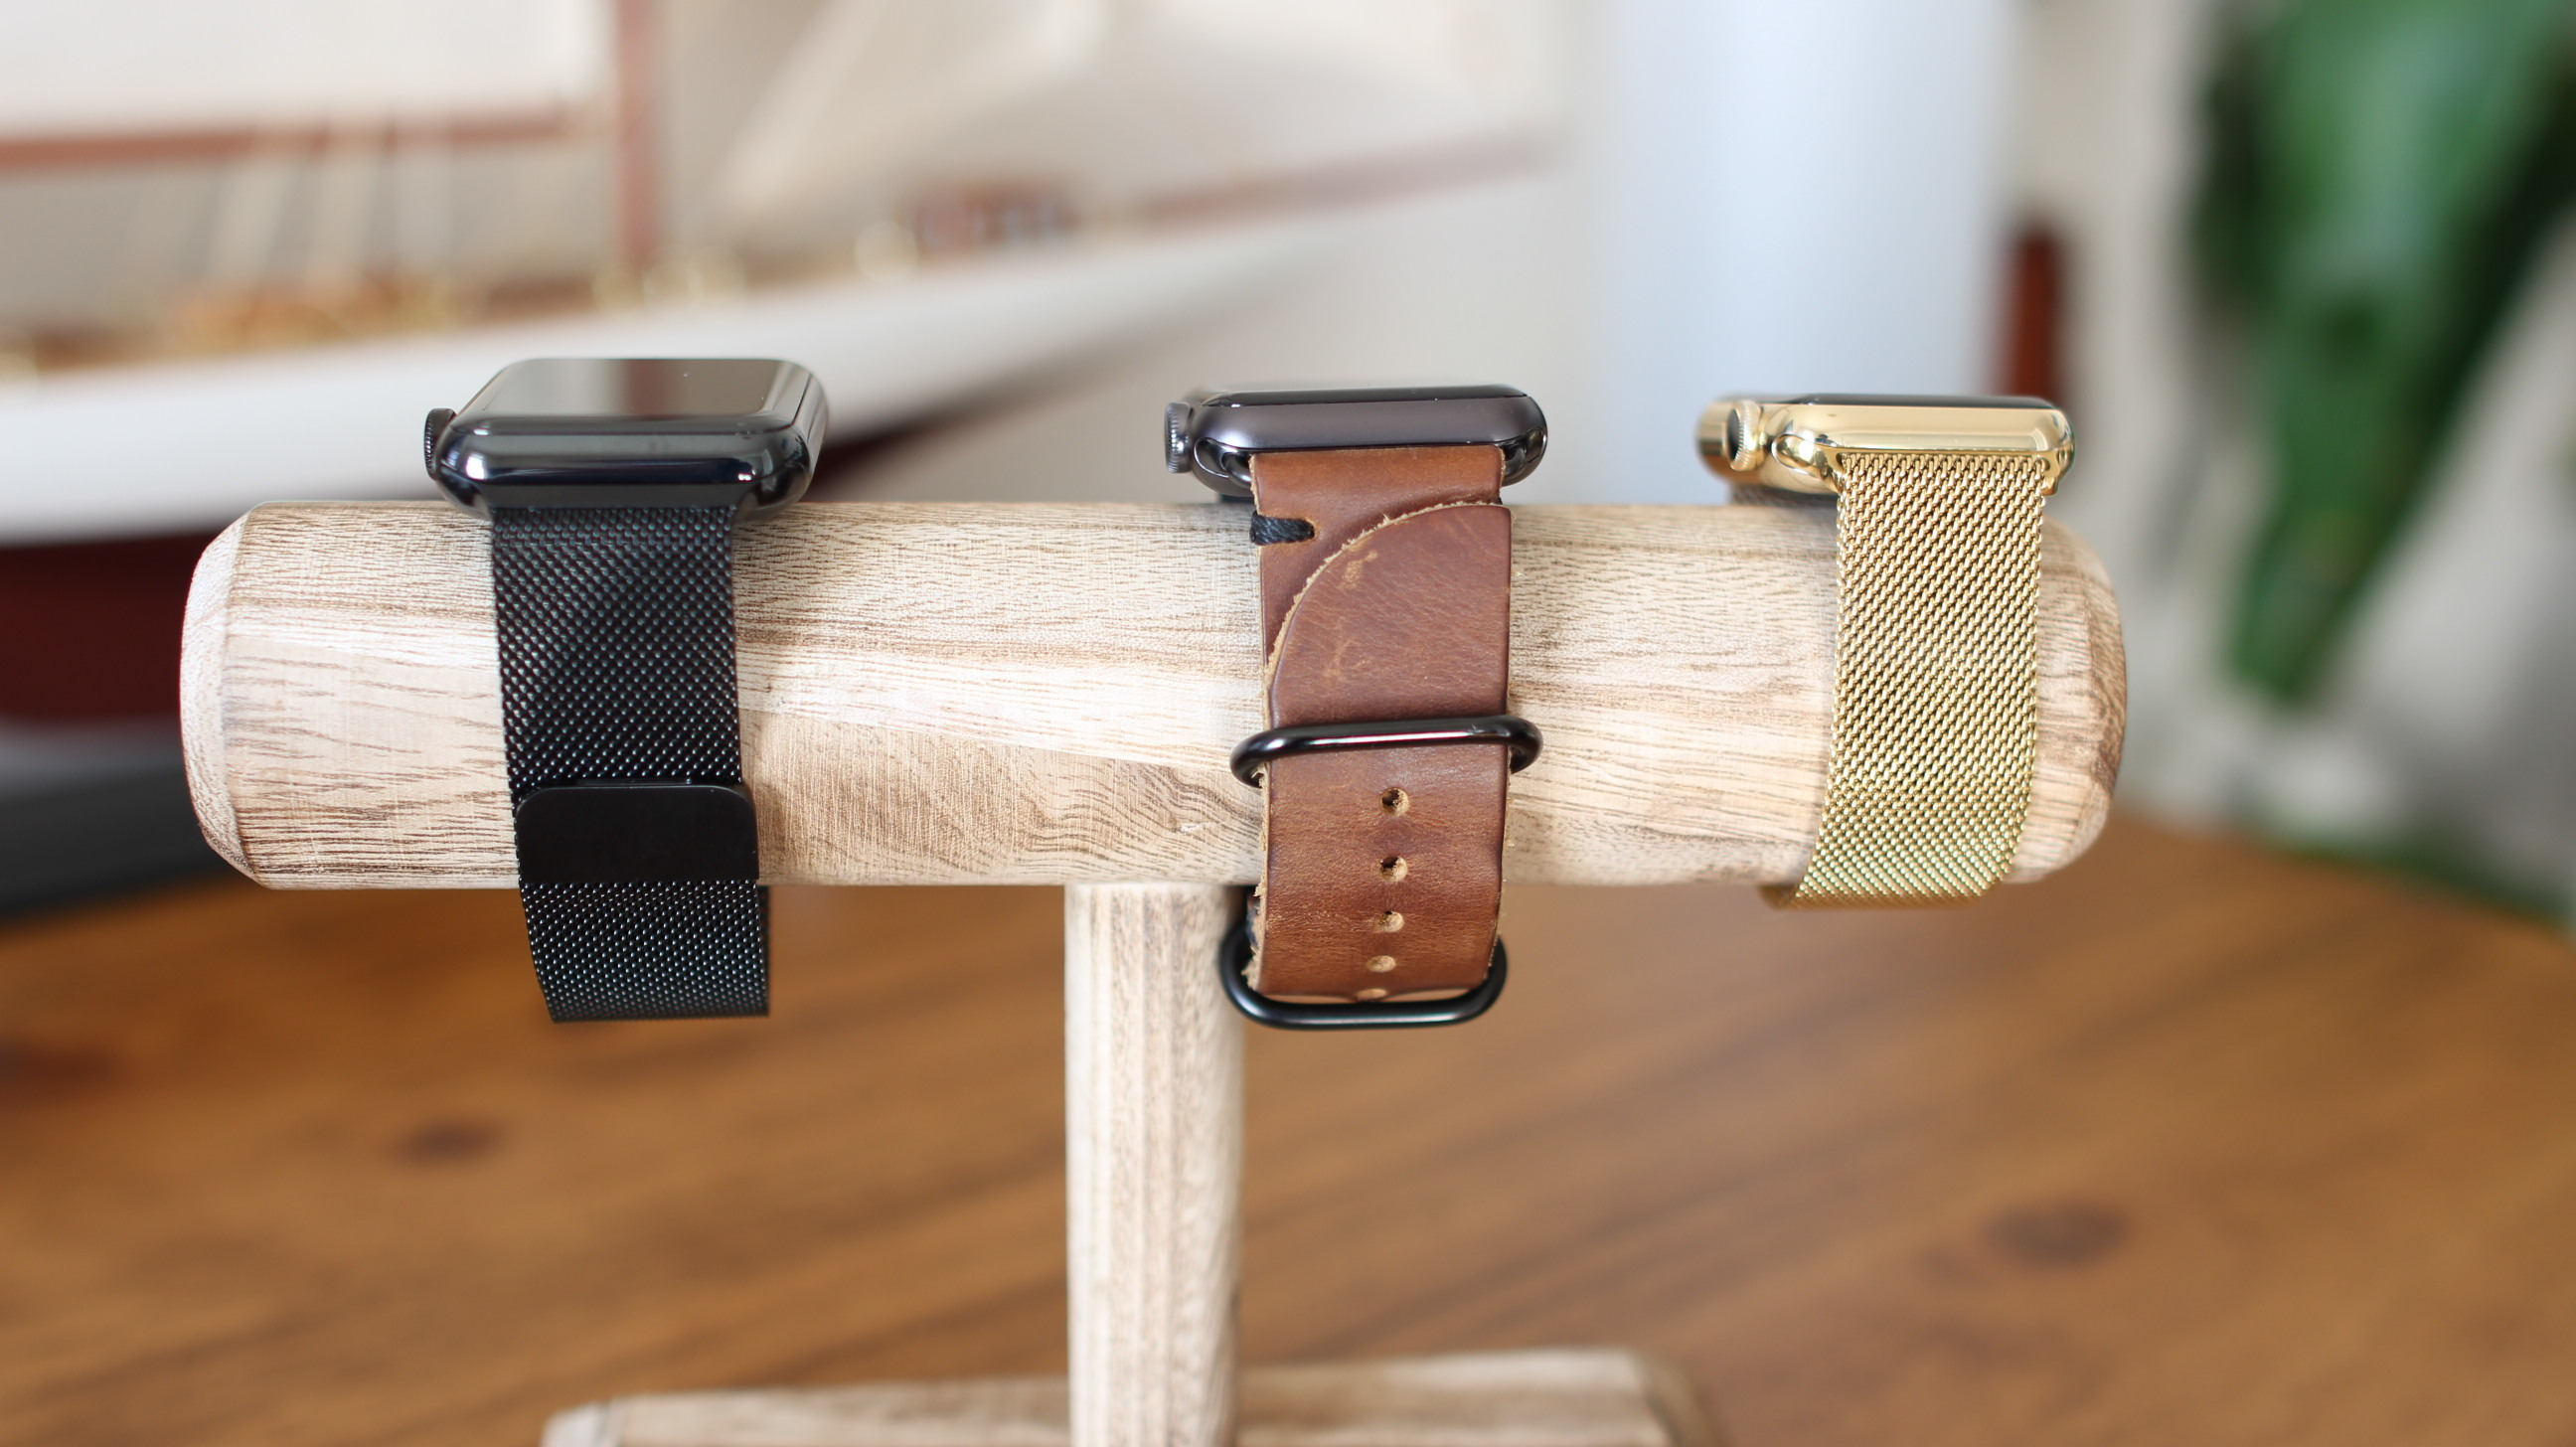 b6c1bbe20a23 Best 3rd Party Bands for Apple Watch Series 3